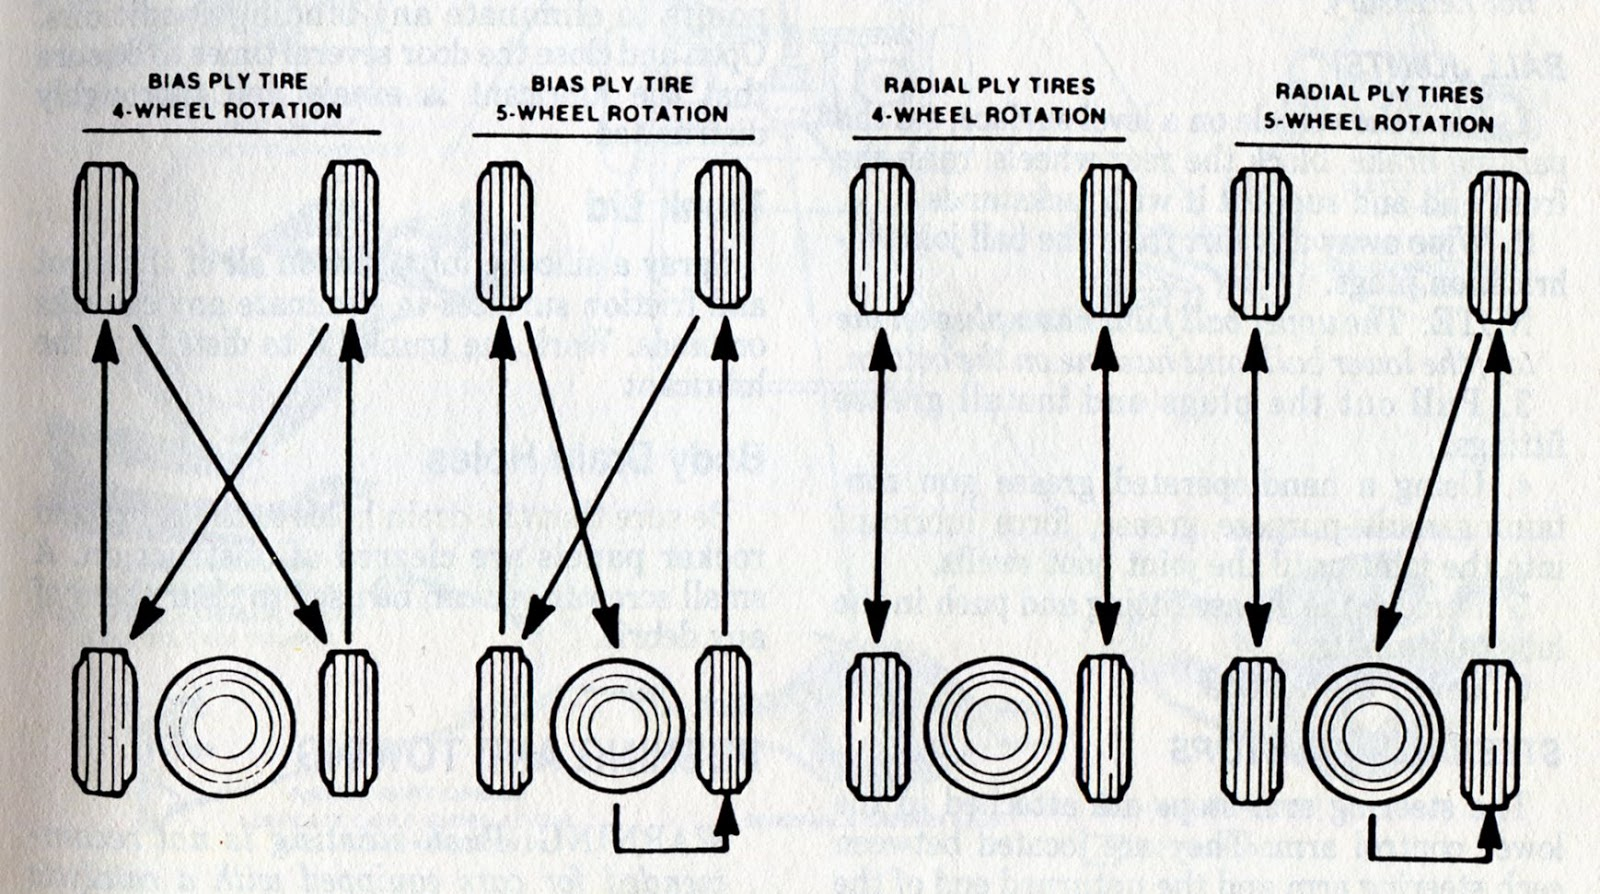 Tech files series auto tire conversion chart rim sizes and tire rotation guide for various styles of tires geenschuldenfo Image collections